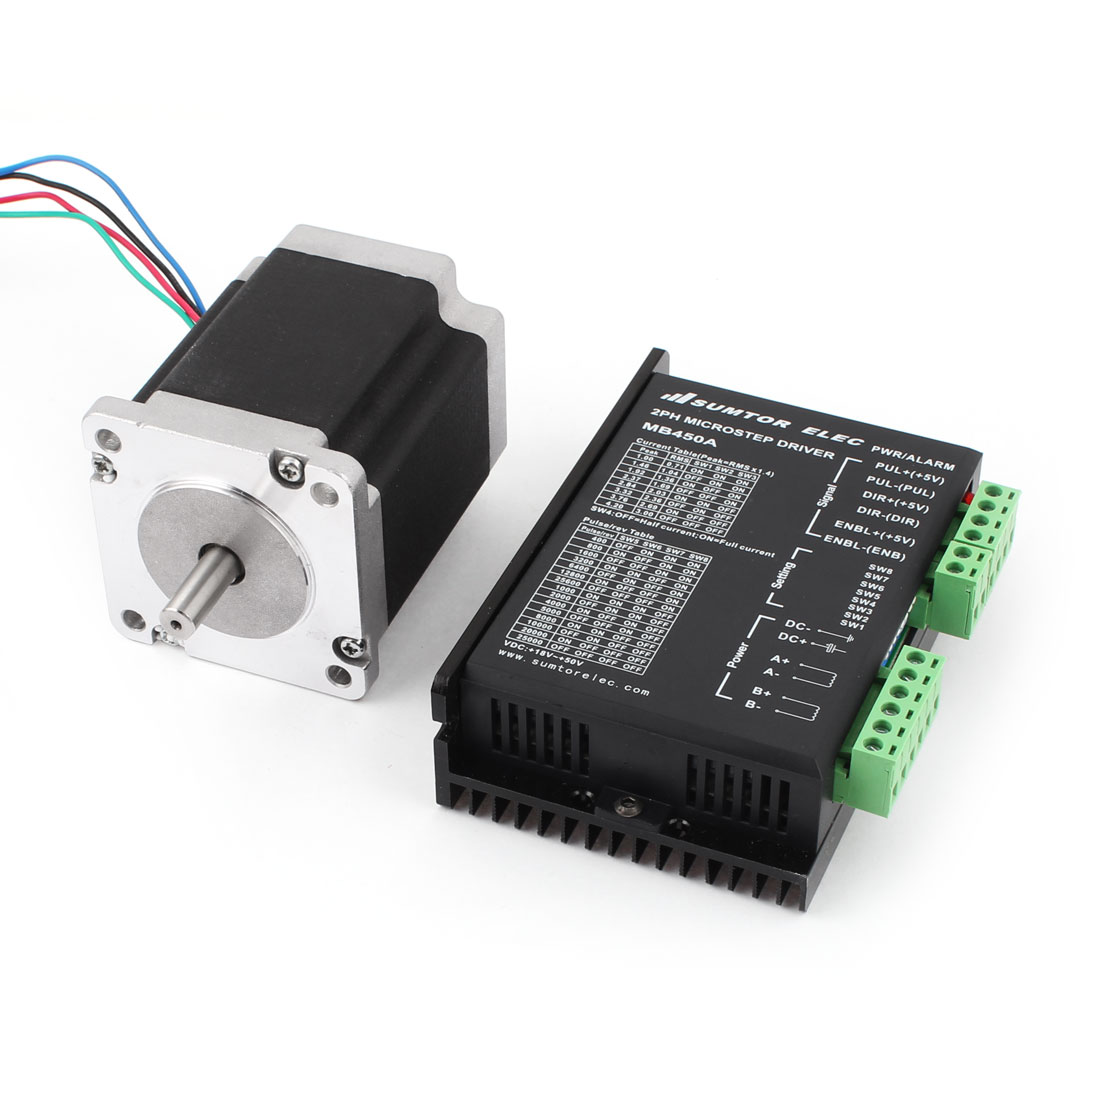 Mill Robot 2 Phase Lathe CNC Stepper Motor 4A 76mm + MB450A Stepper Motor Driver